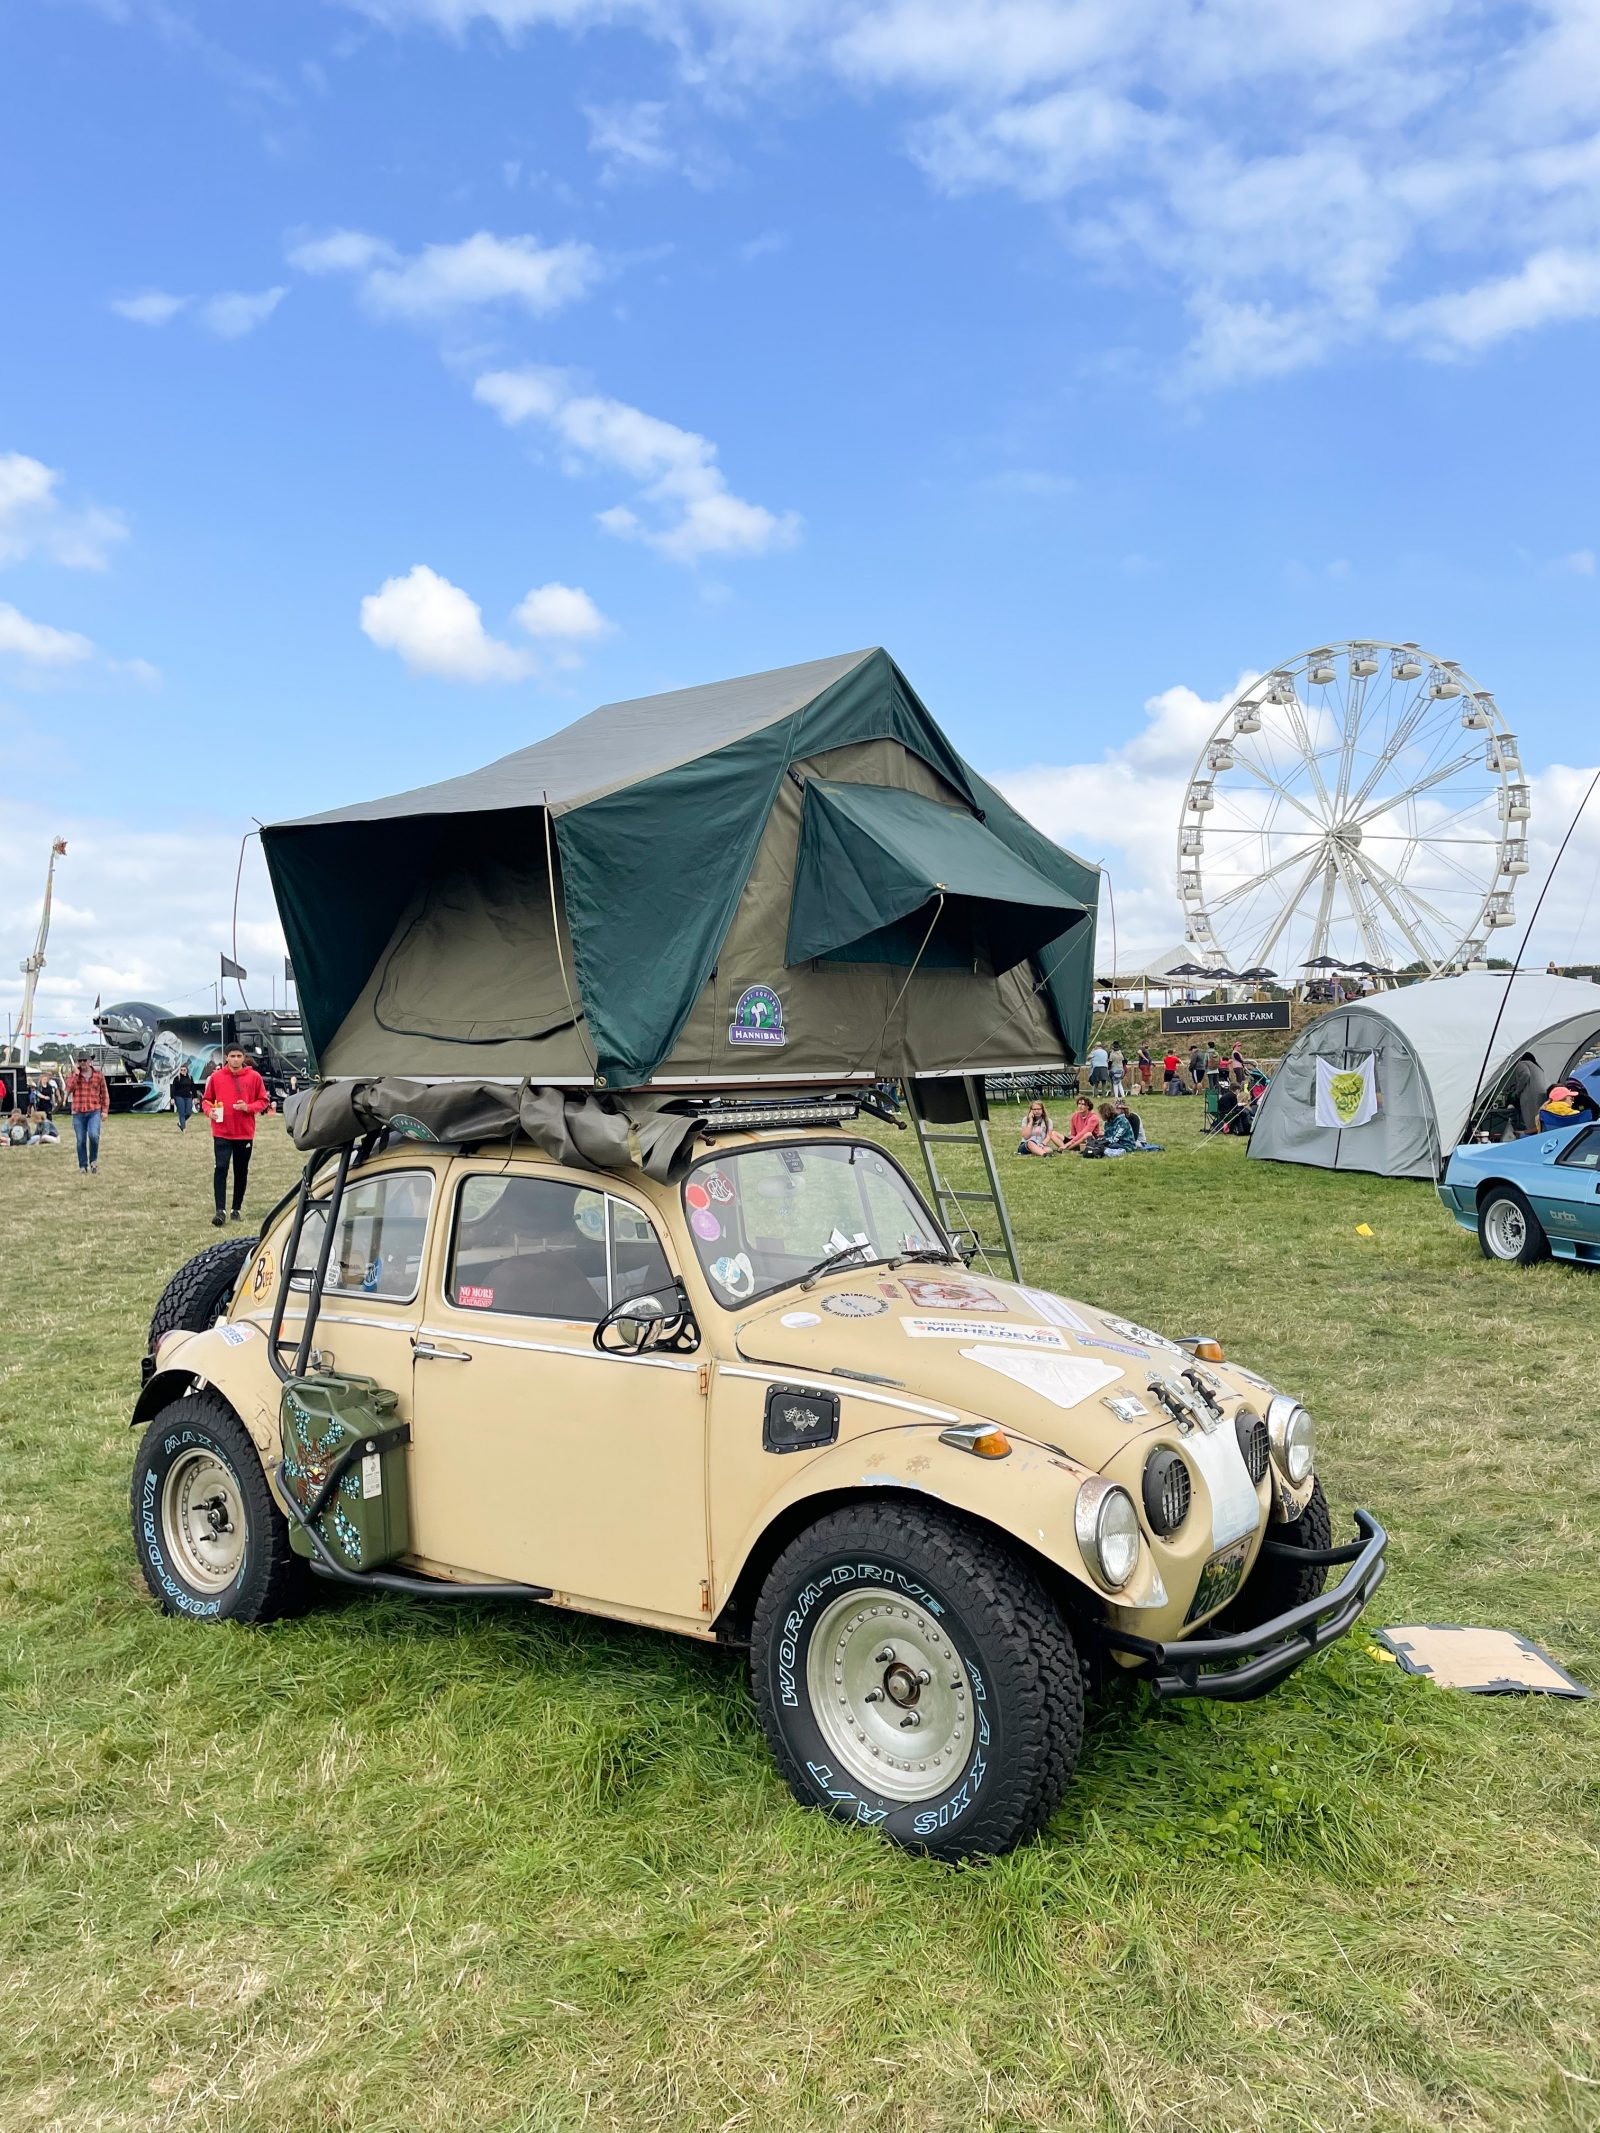 Volkswagen Beetle at CarFest South